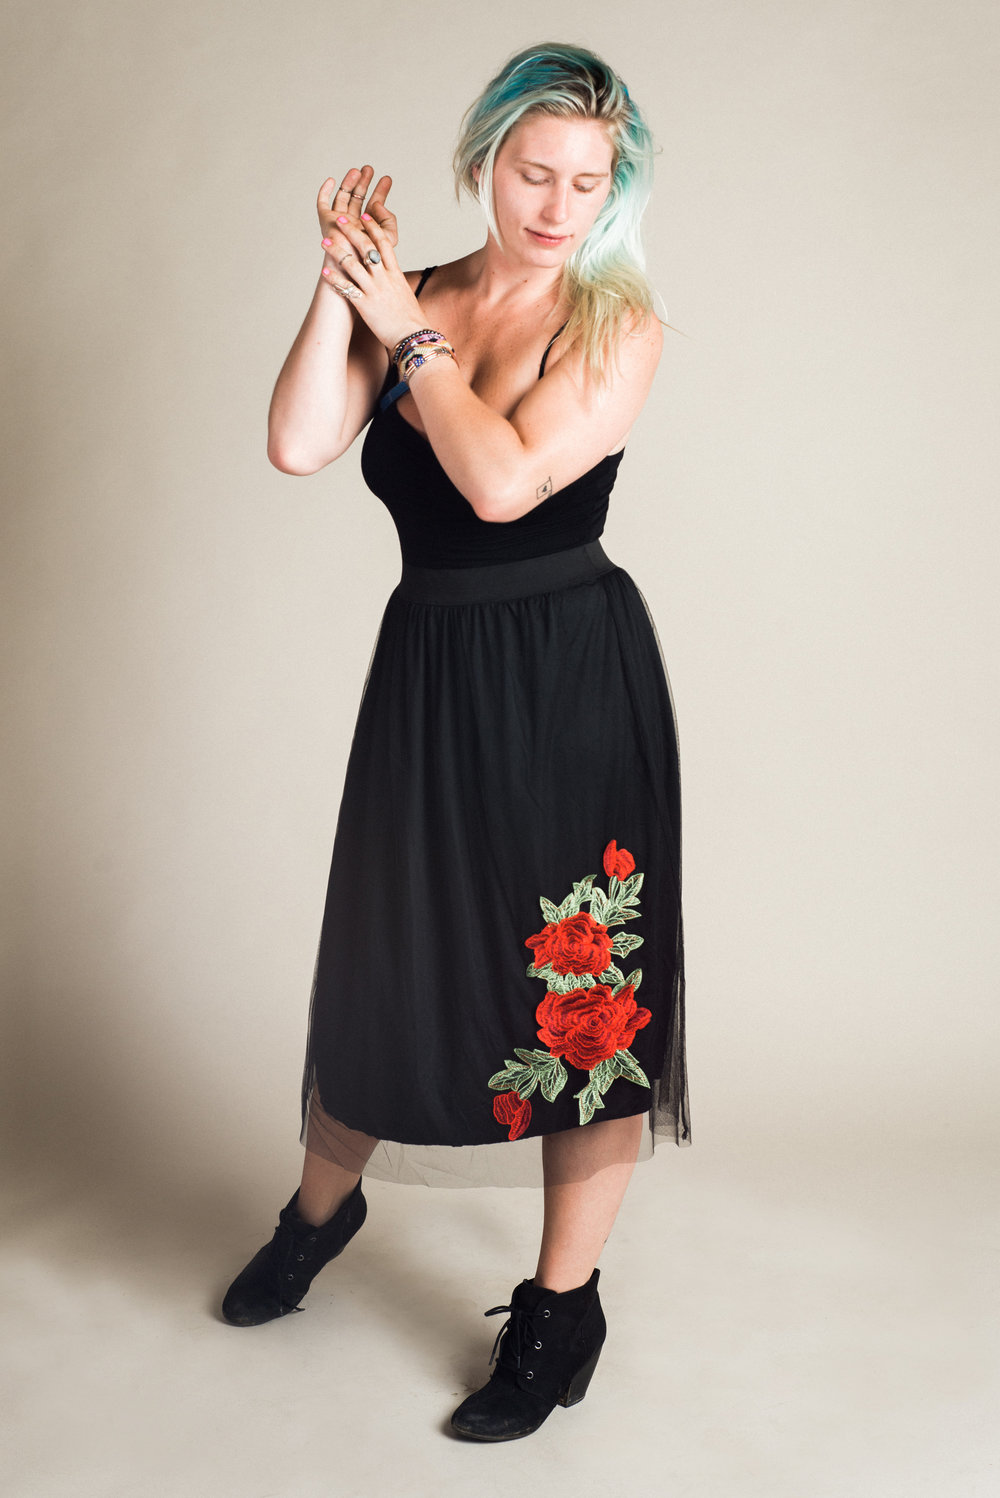 Black Tulle Skirt (S-L) | Modeled by Sarah